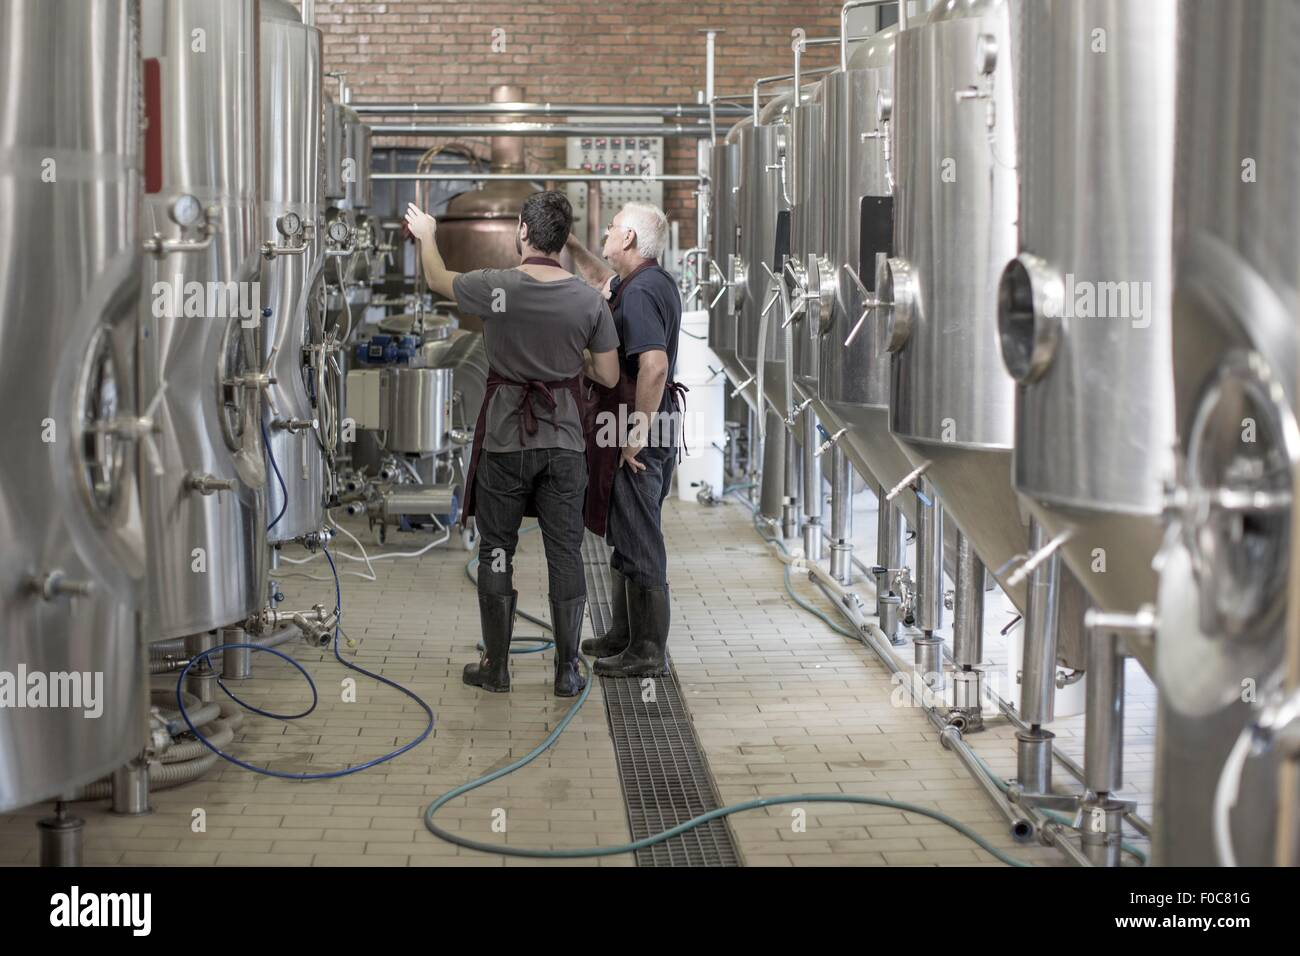 Beer Tanks Stock Photos Amp Beer Tanks Stock Images Alamy